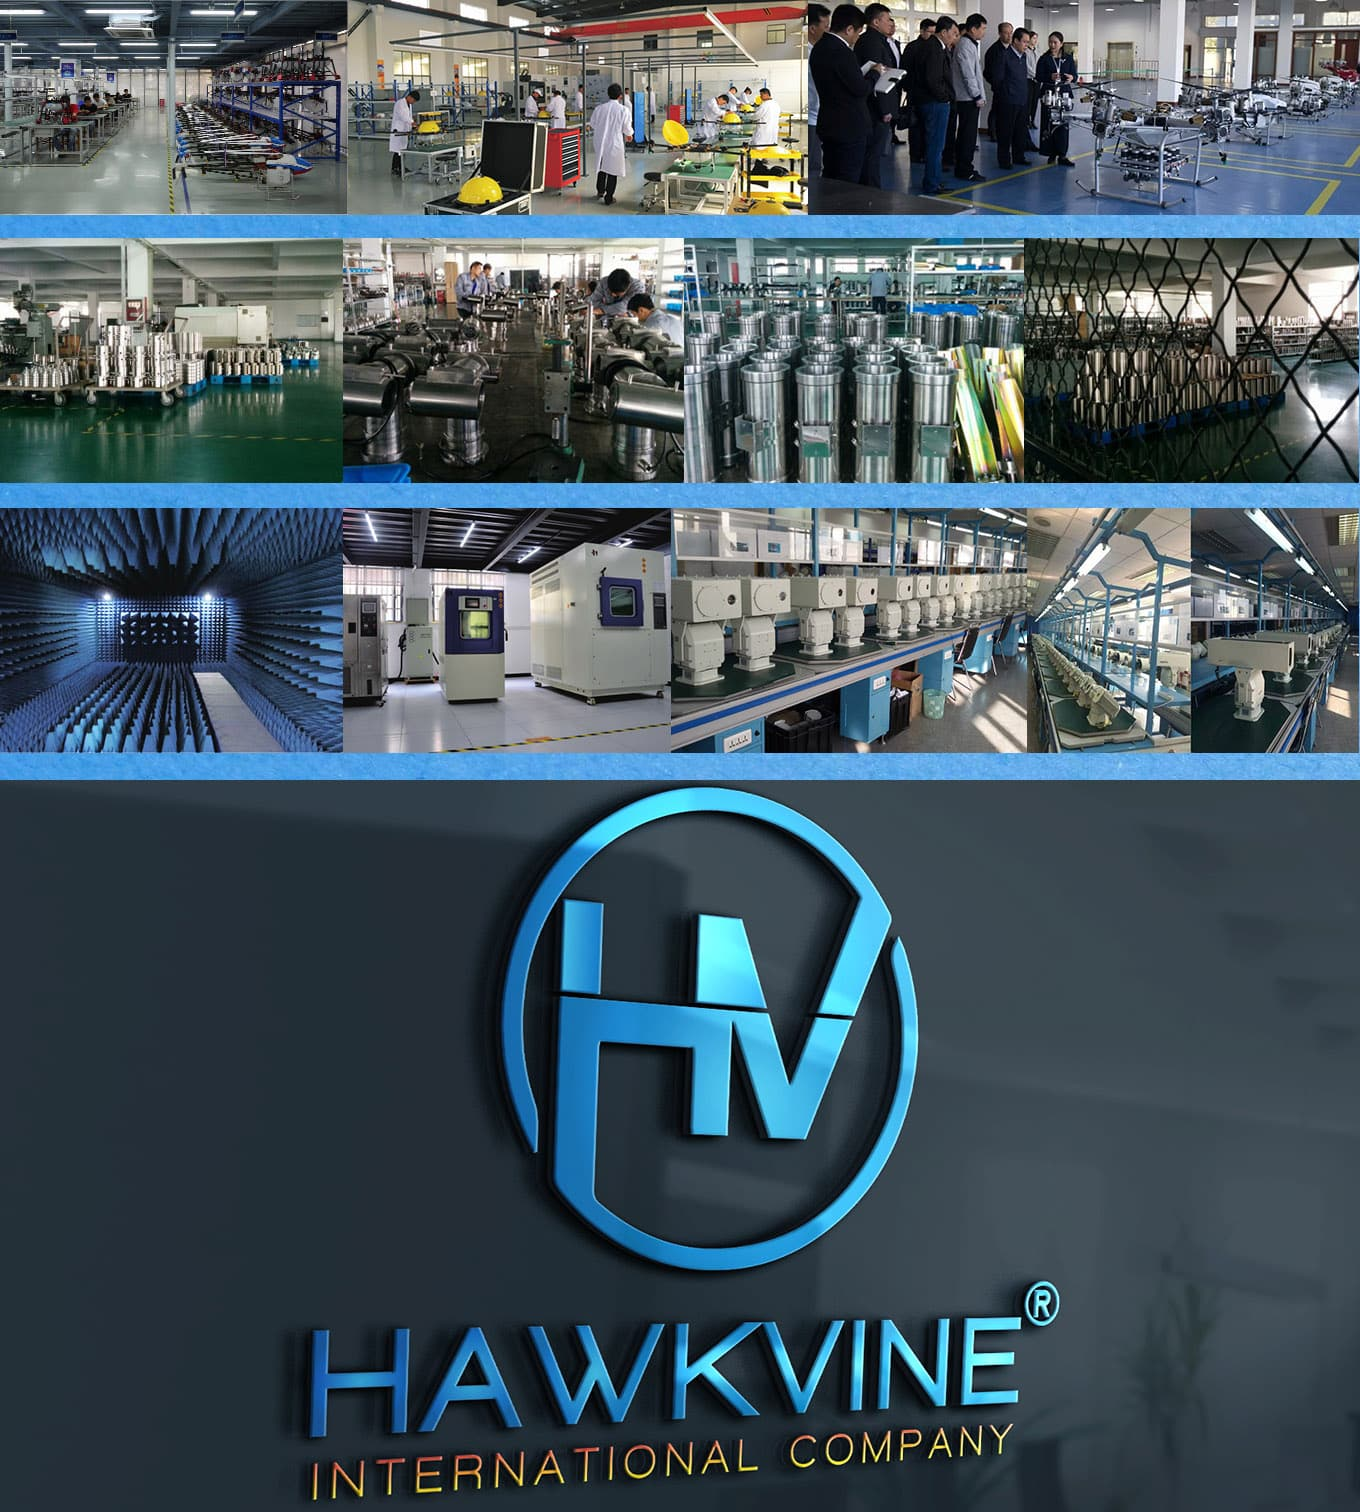 Hawkvine International Company 2018